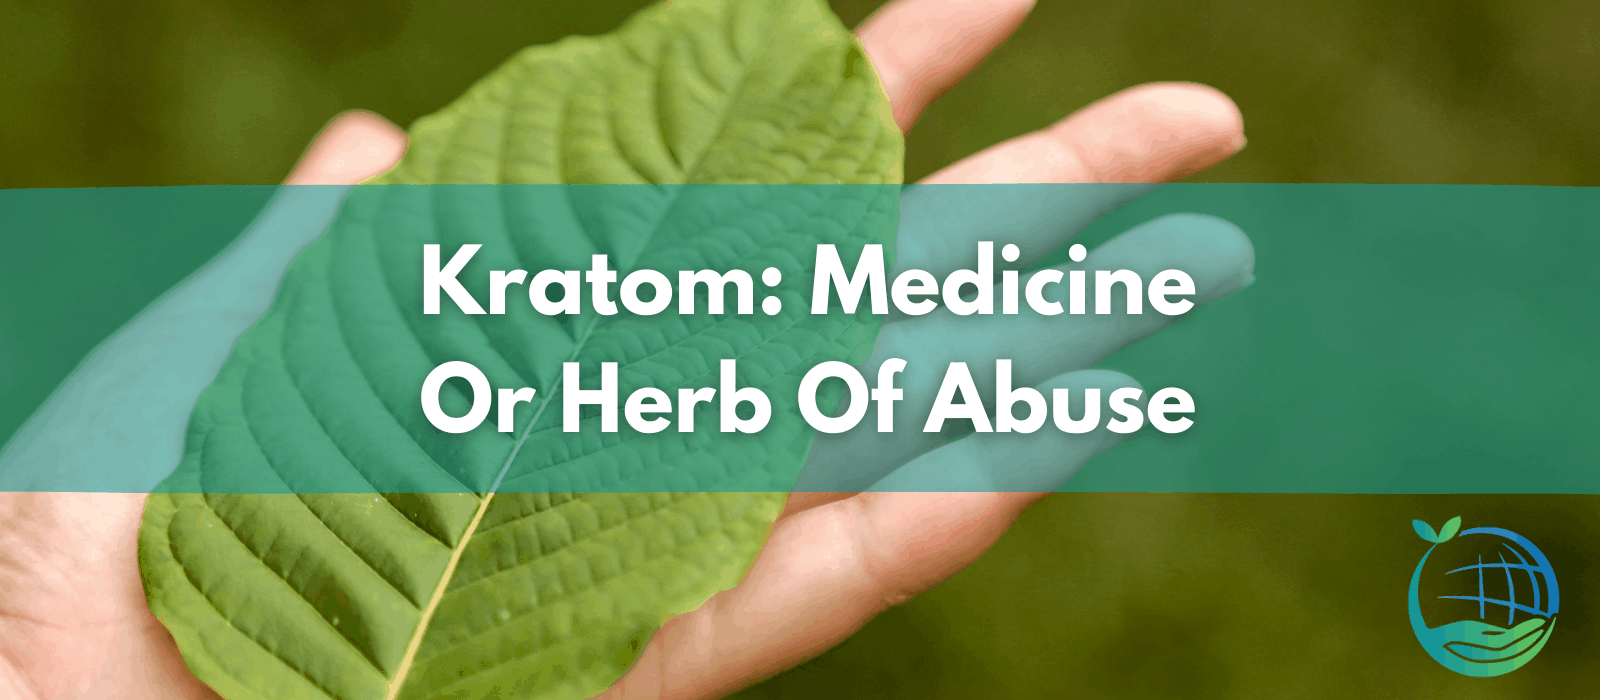 Is Kratom a Miracle Medicine or Herb of Abuse